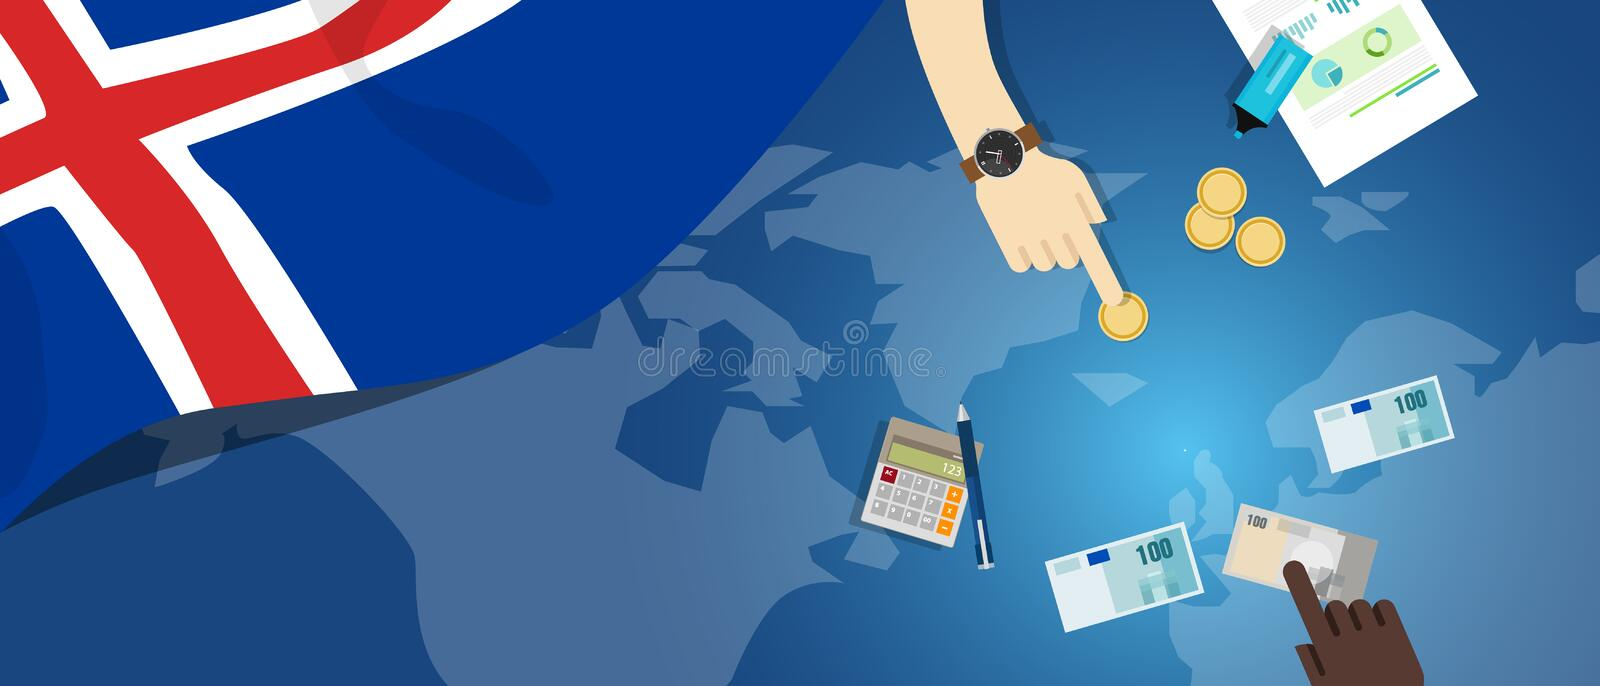 Iceland economy fiscal money trade concept illustration of financial banking budget with flag map and currency. Vector royalty free illustration